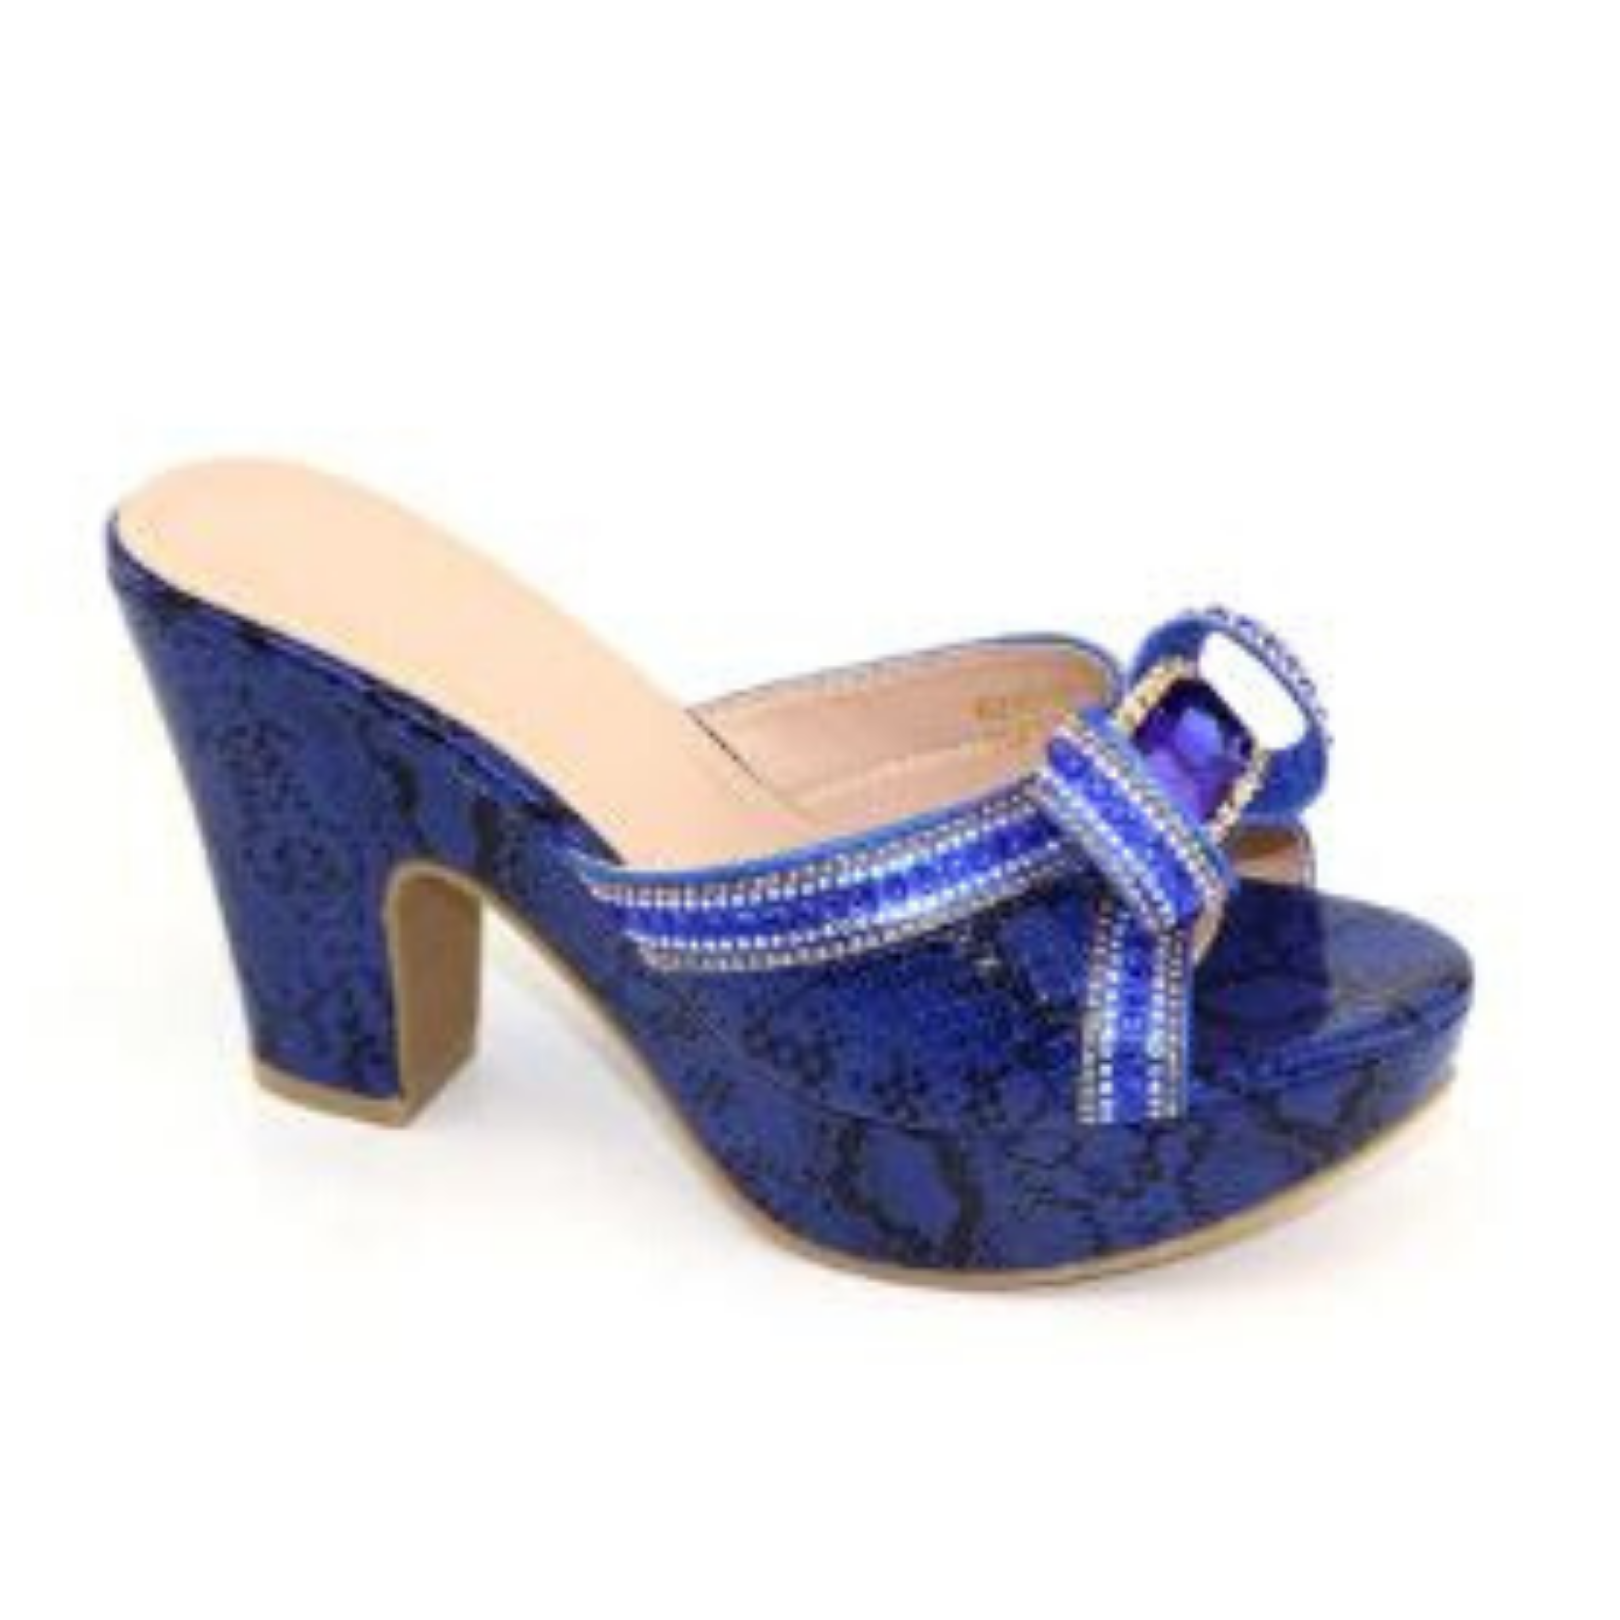 High-Quality High Heels #29 - Alagema Fabrics & Accessories